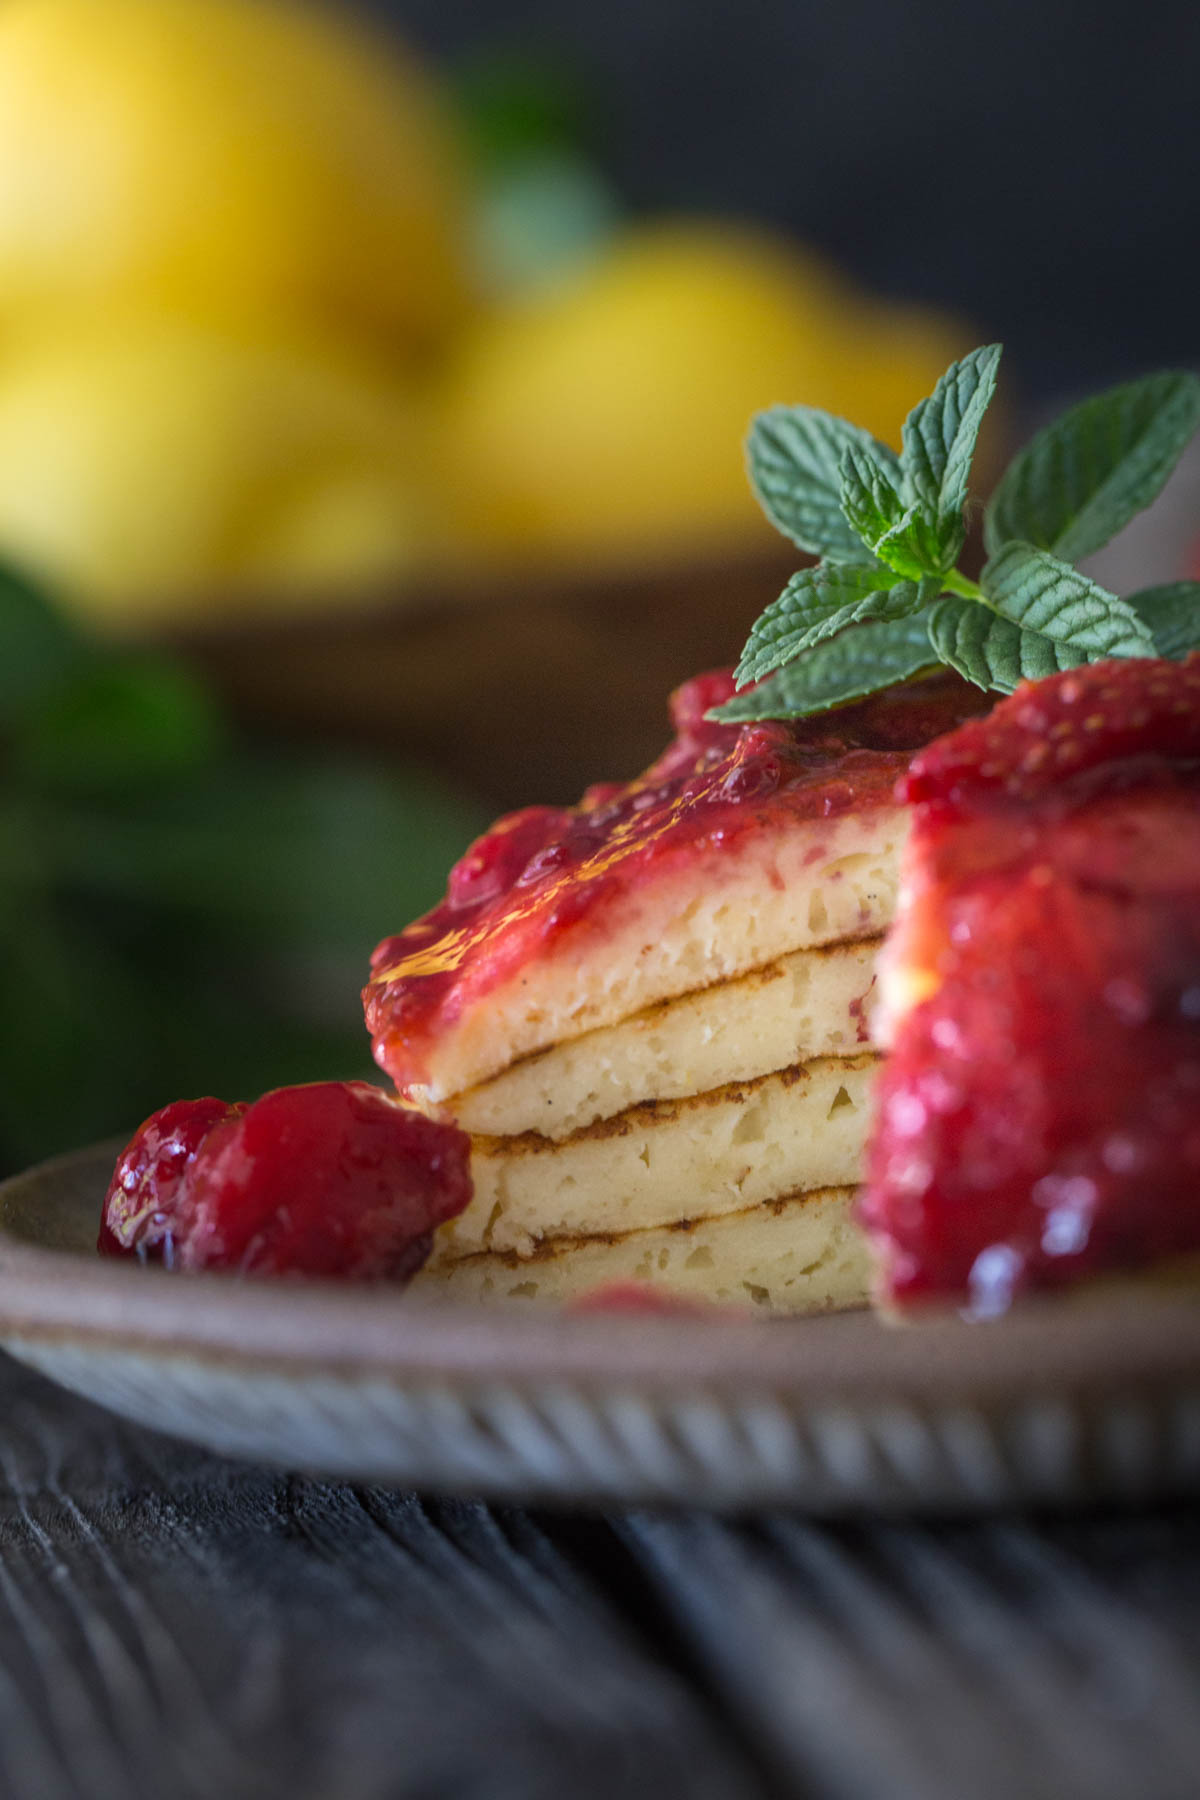 A plate of lemon ricotta pancakes with a bite cut out.